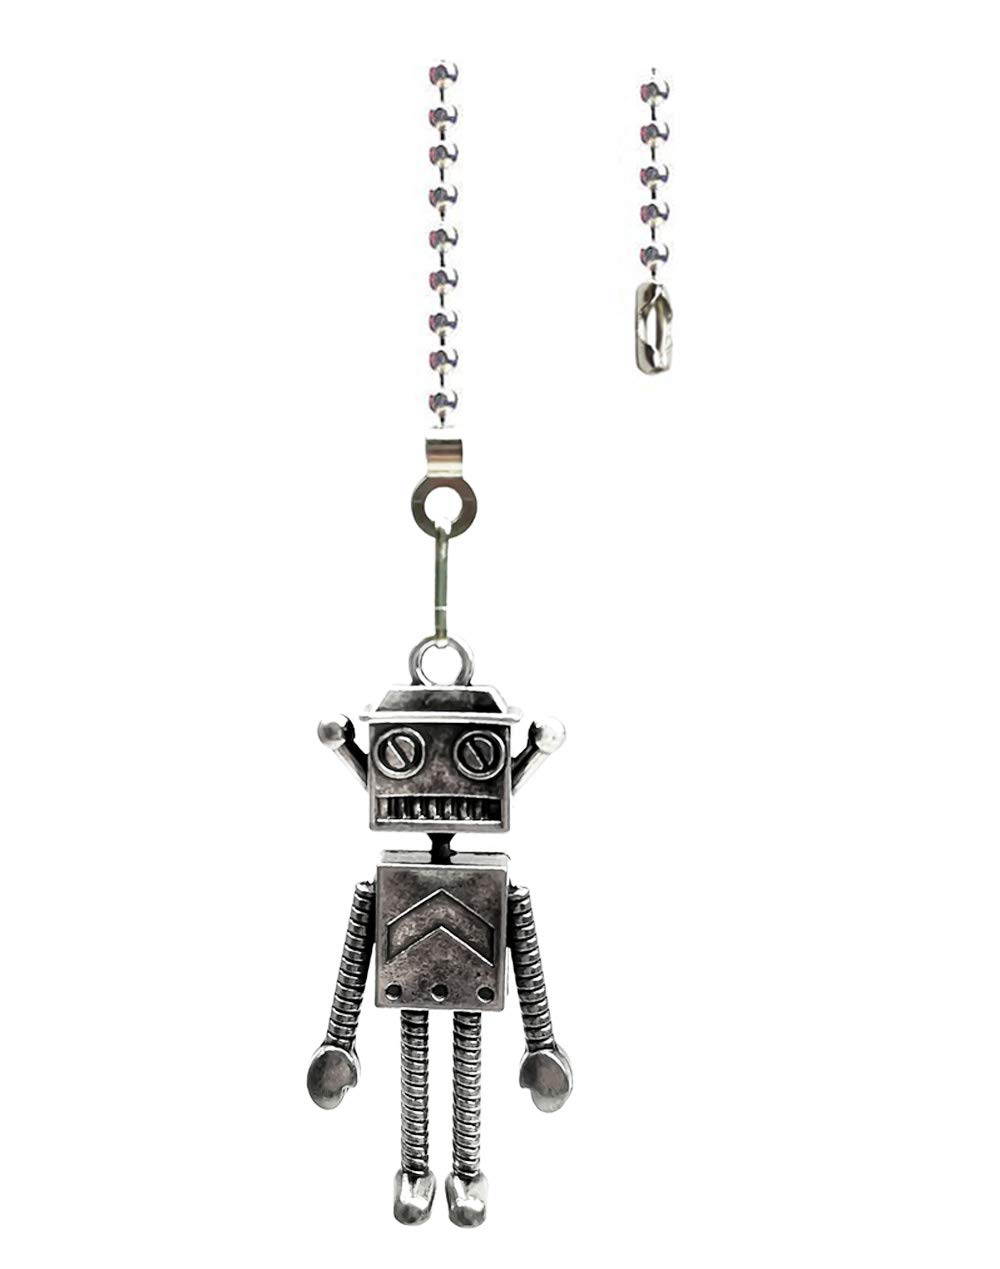 Hyamass 12 inch Antenna Robot Charm Pendant Ceiling Fan Danglers Fan Pulls Chain Extender with Ball Chain Connector